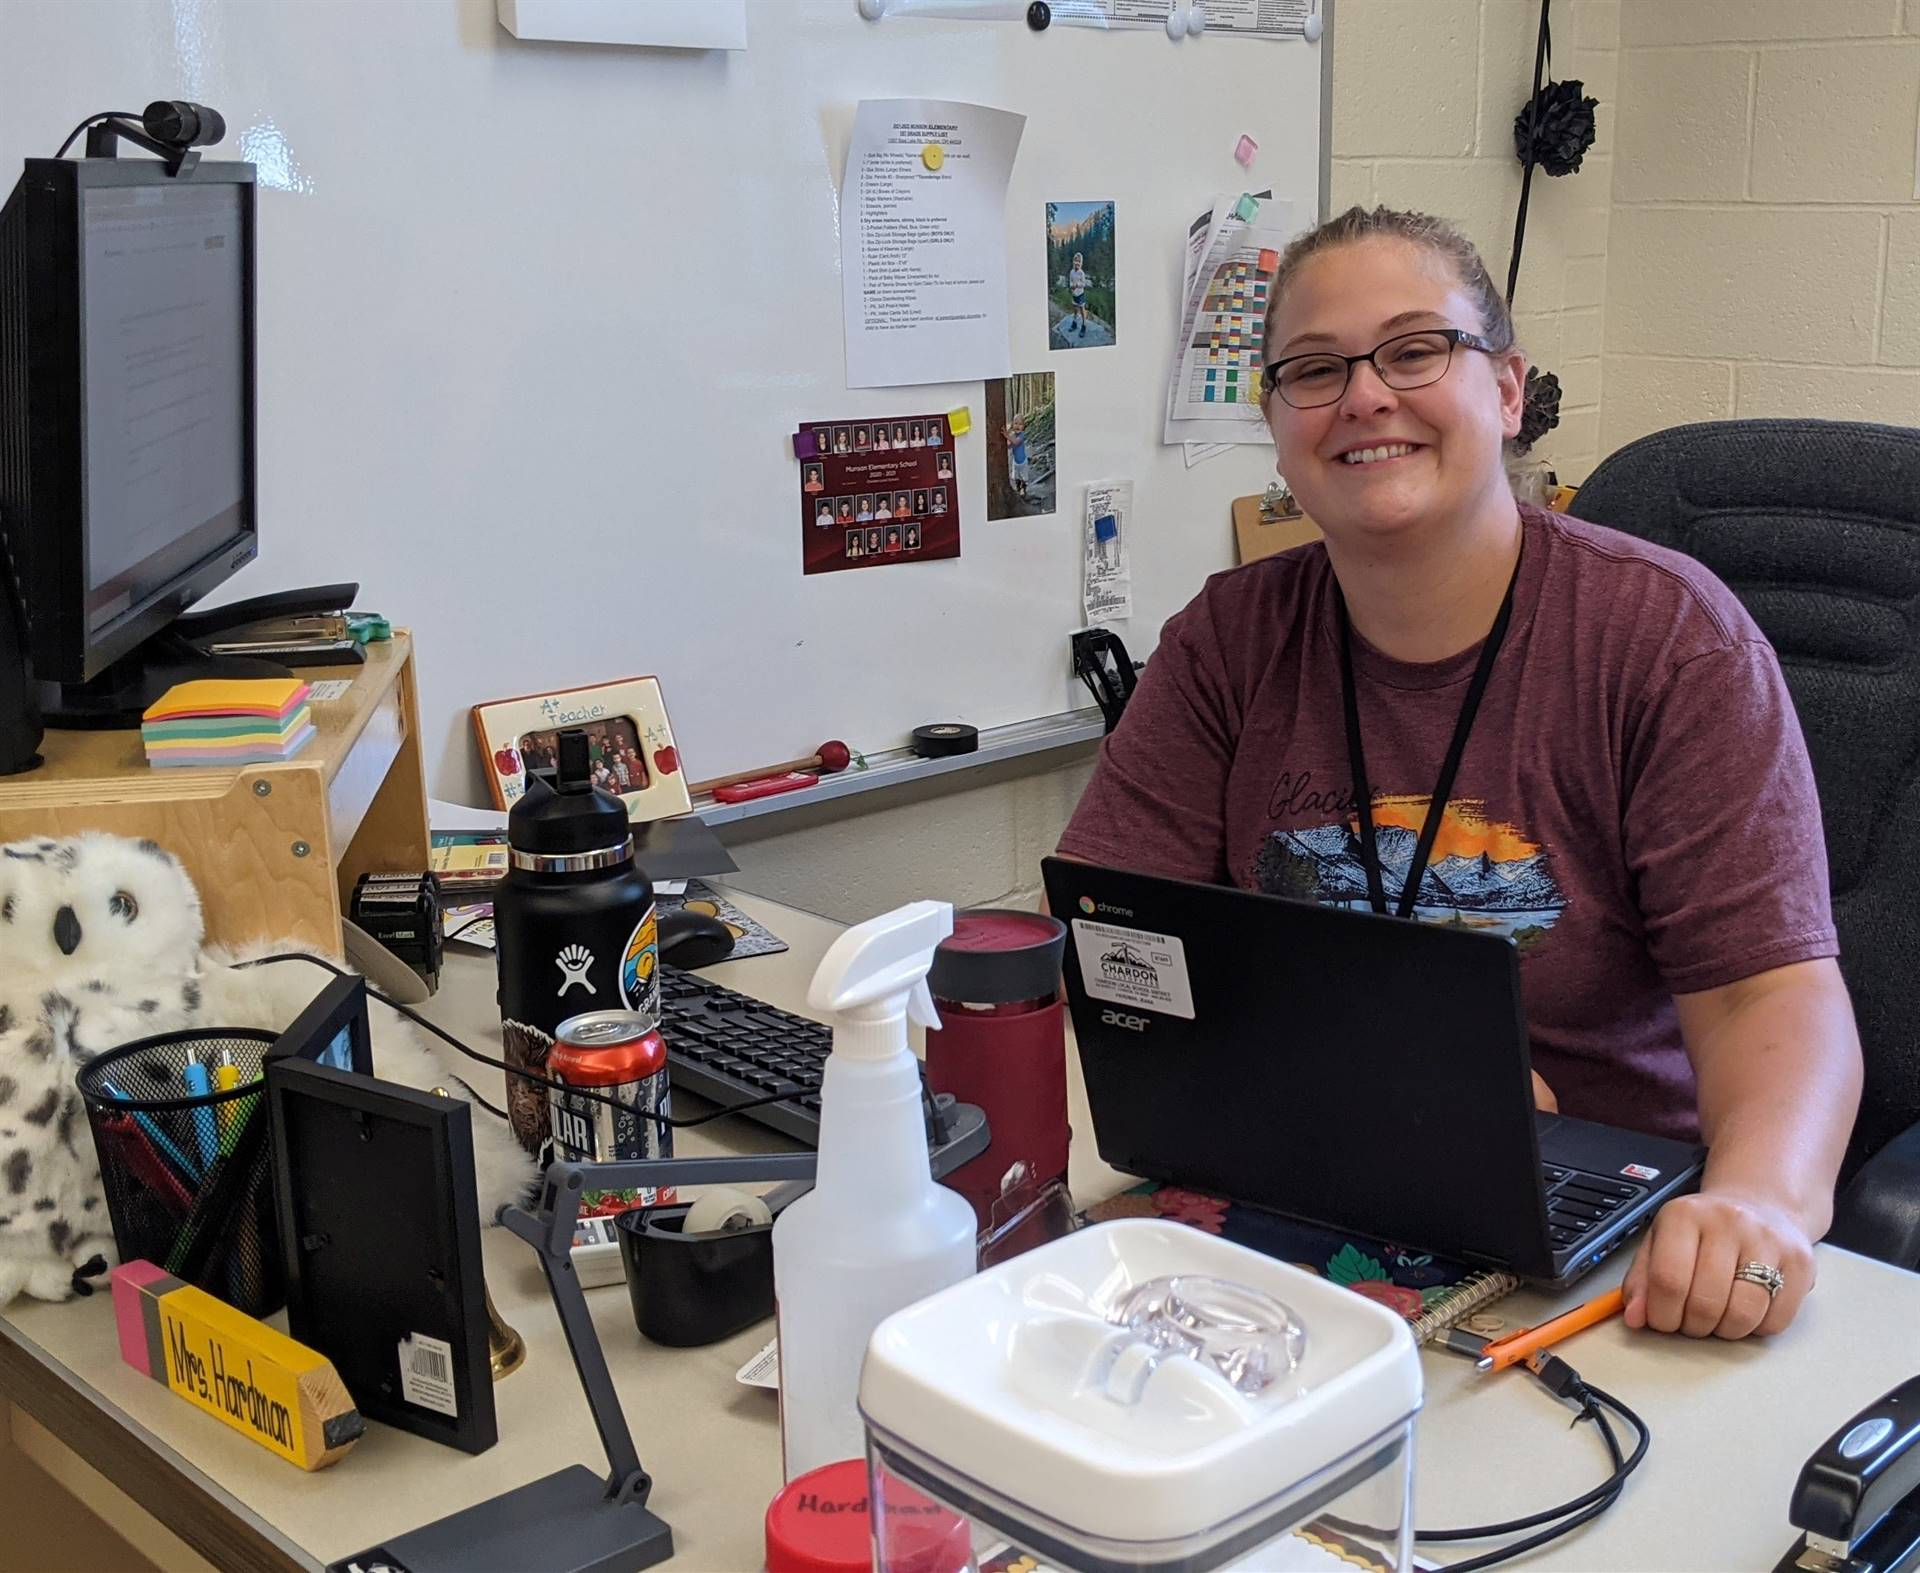 Photo 16:  Munson teacher Mrs. Hardman at her desk and smiling for the camera as she prepares for ba